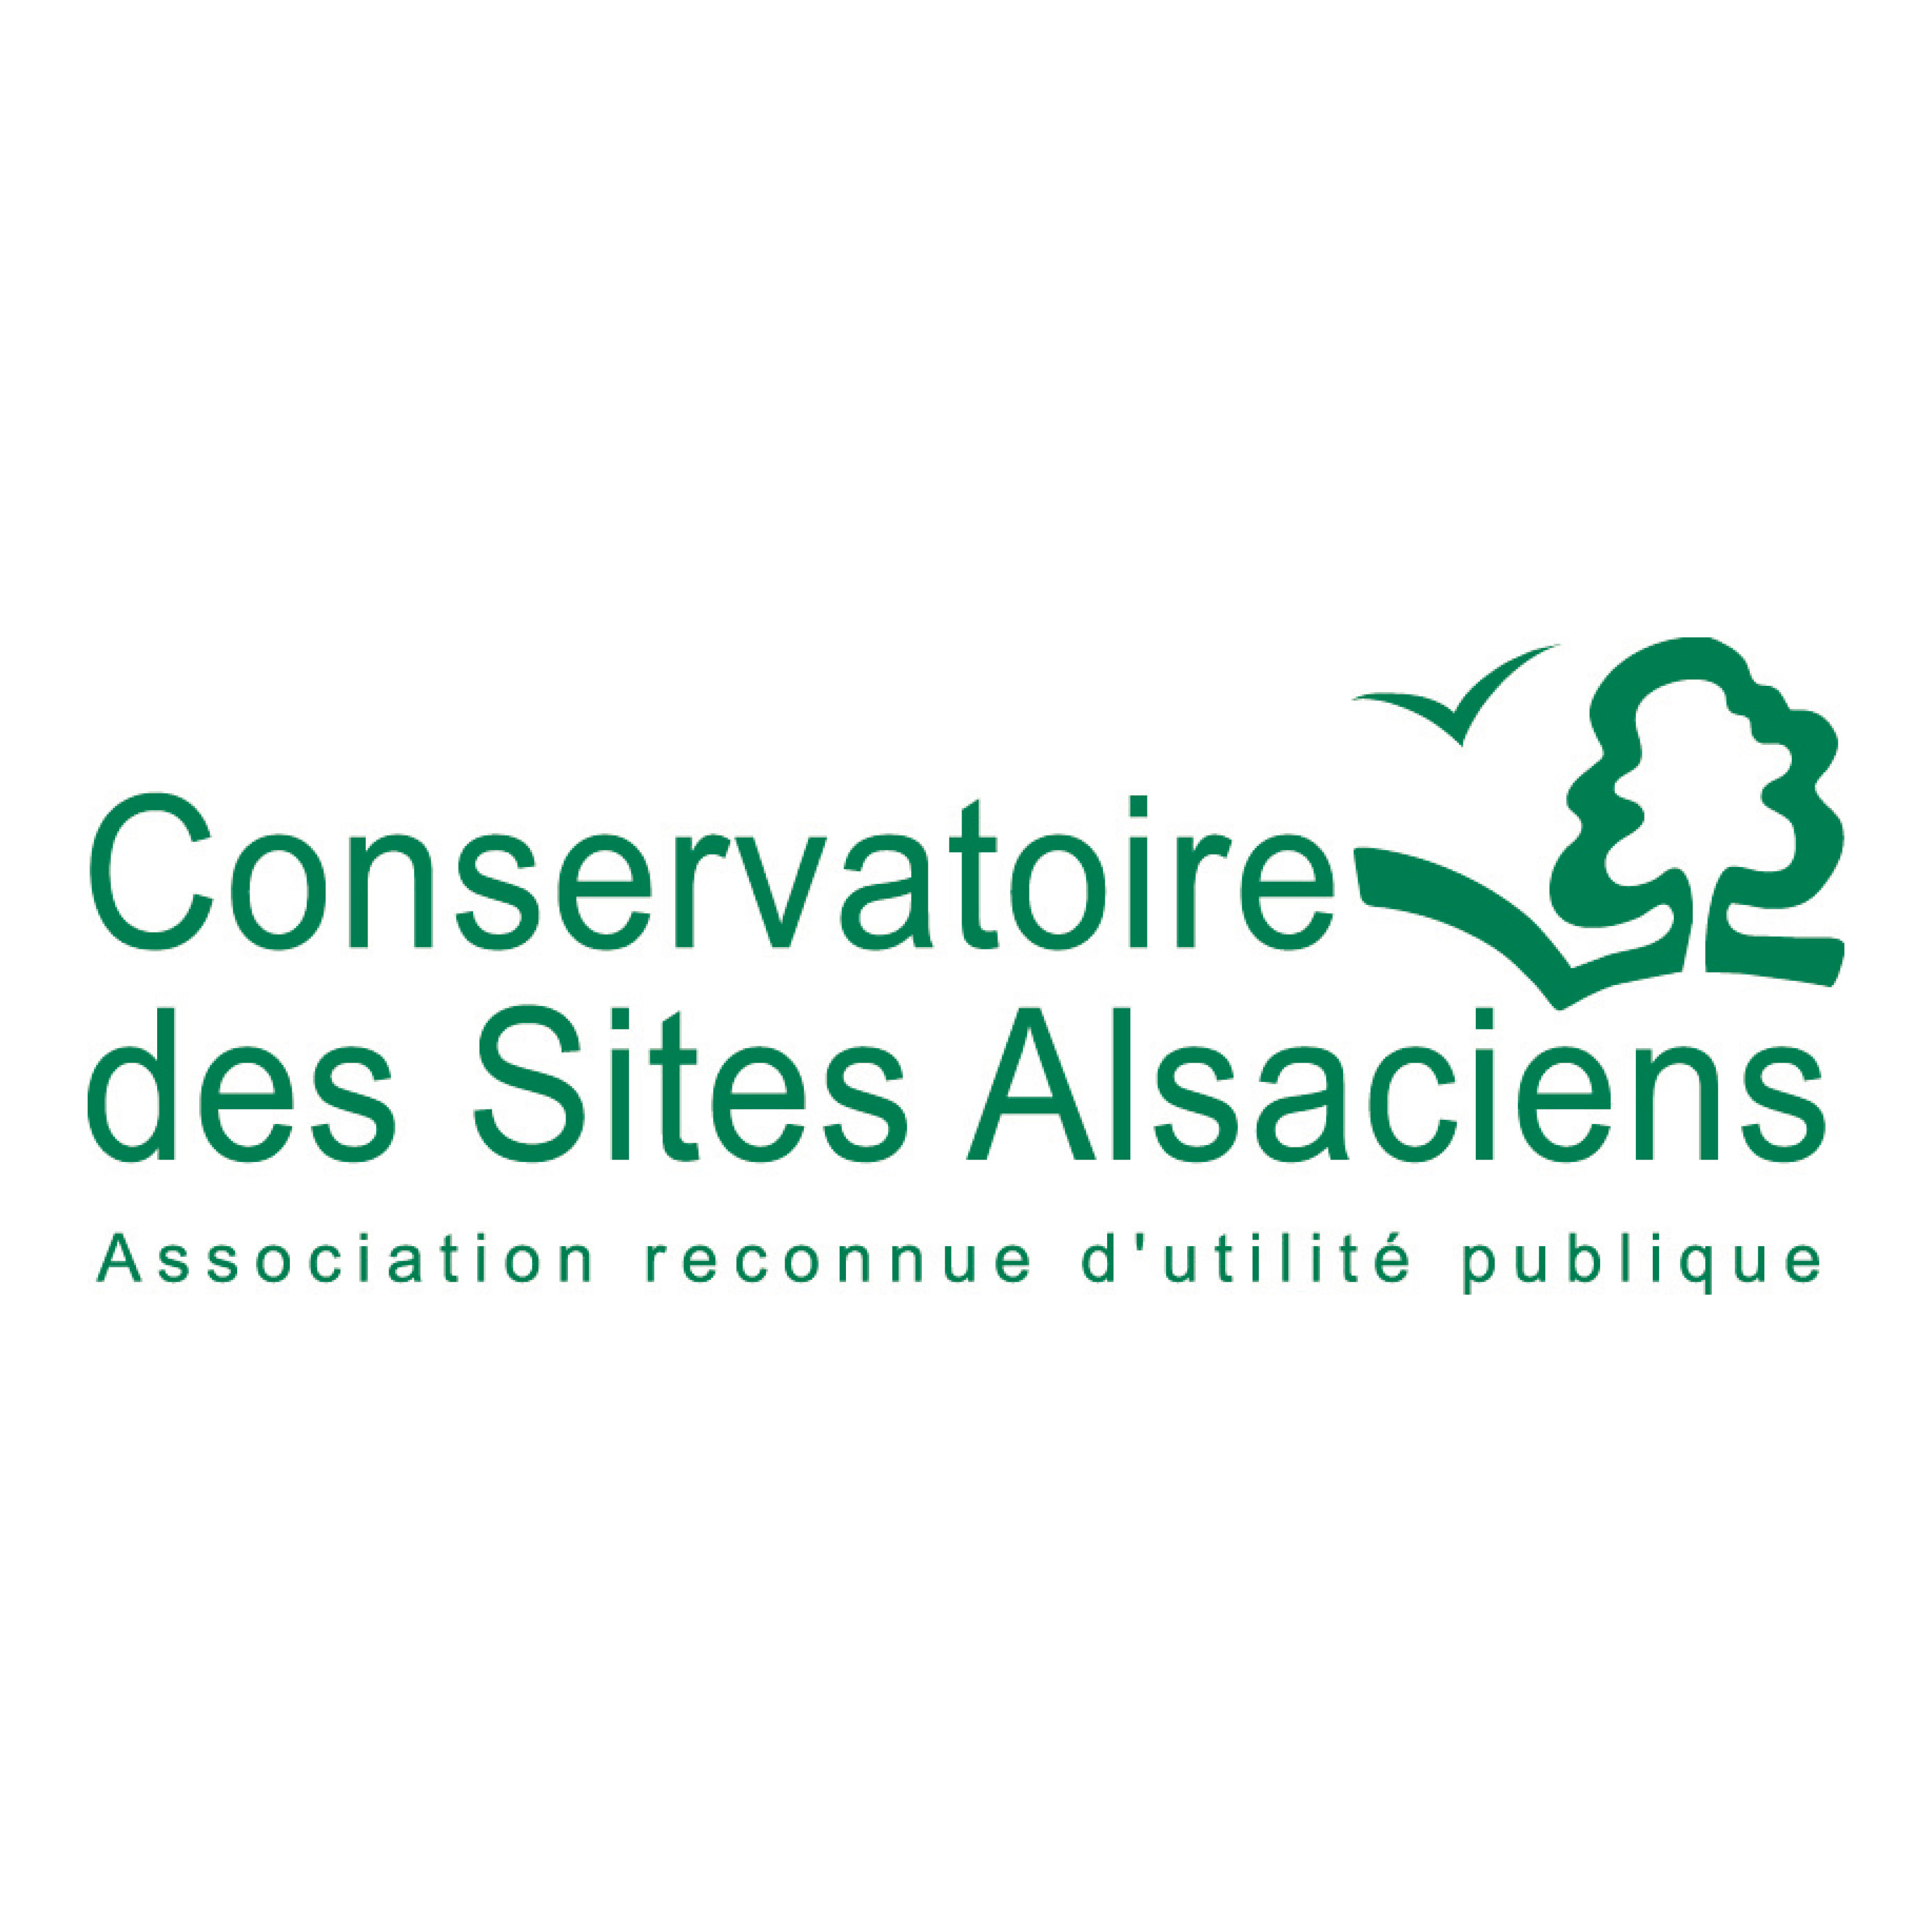 Conservatoire des sites Alsaciens (CSA)